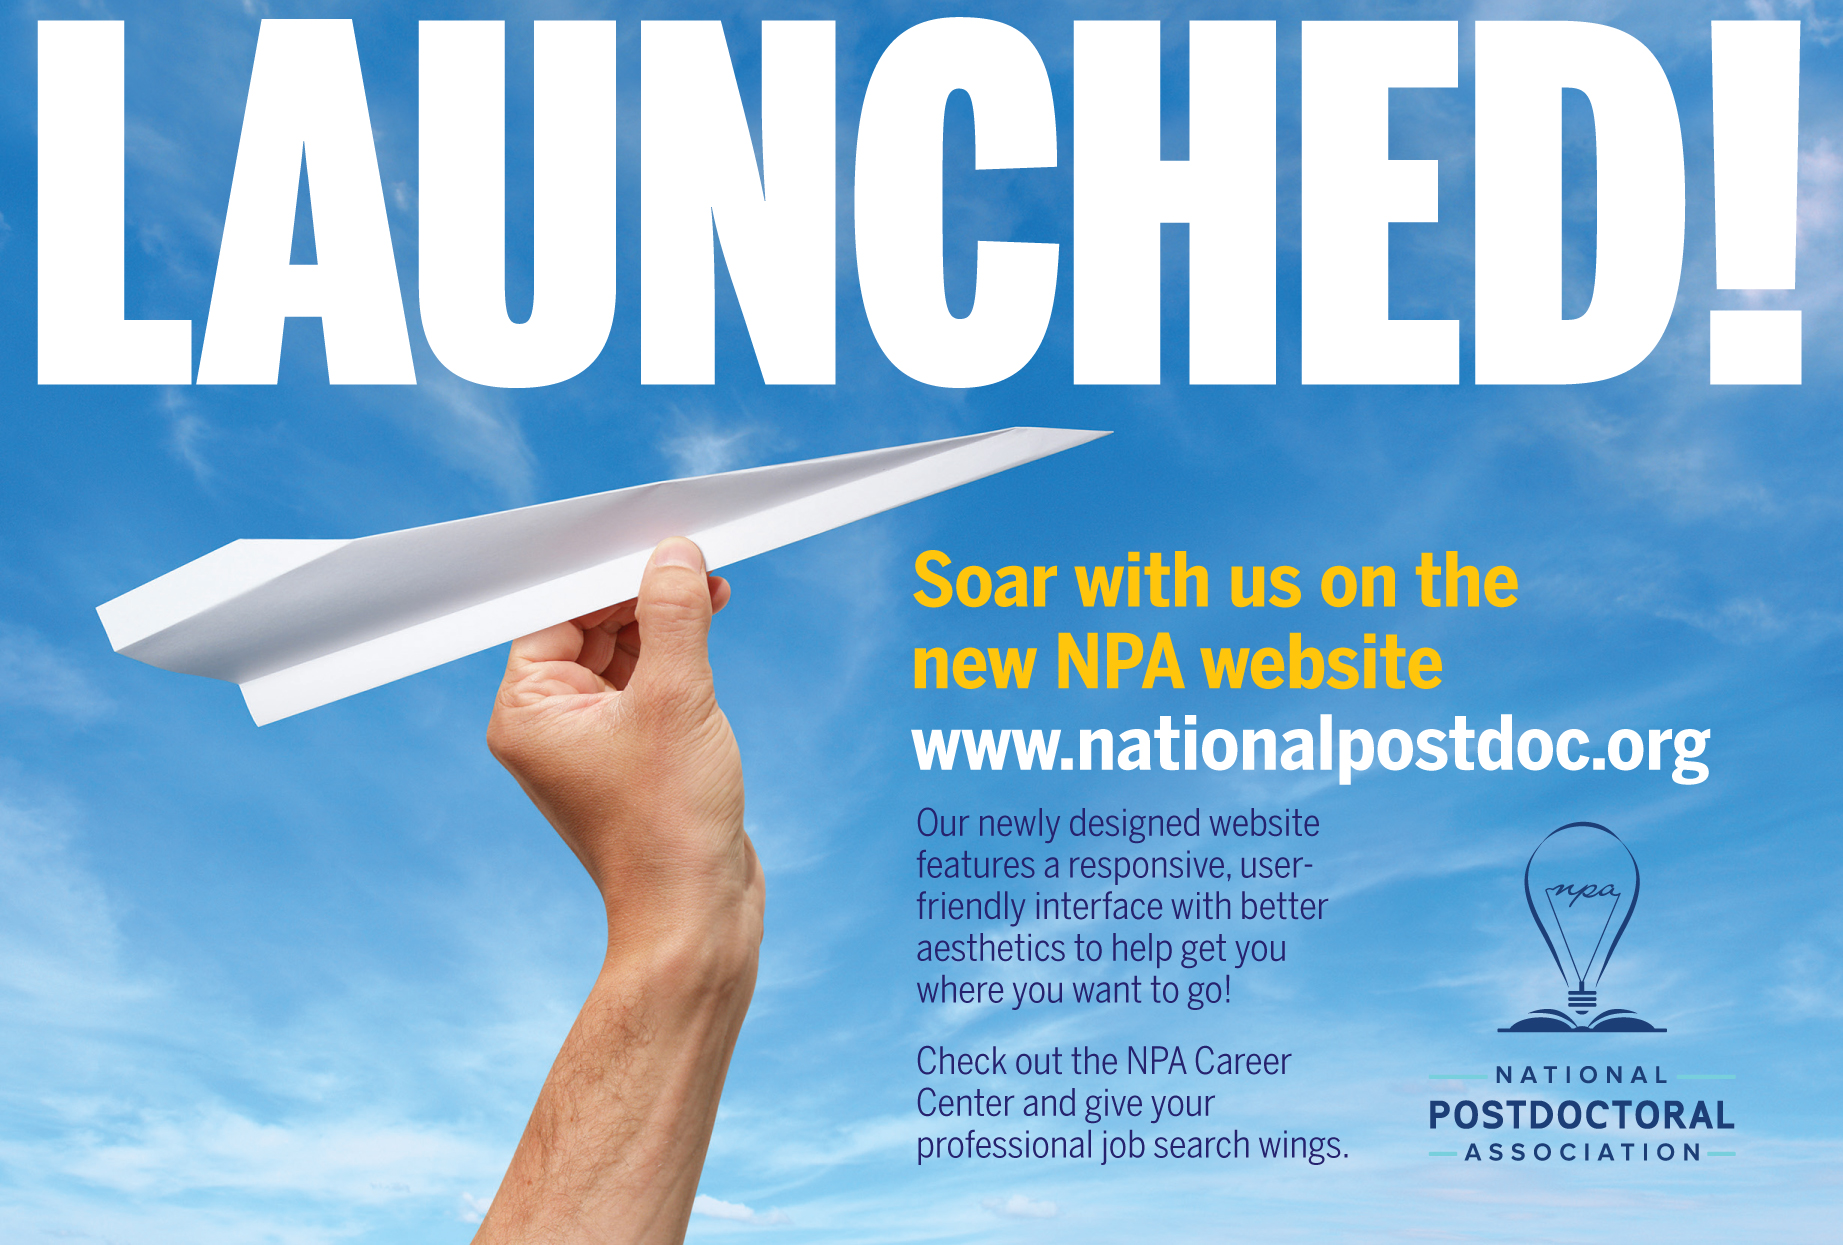 Welcome to our new Website! - National Postdoctoral Association